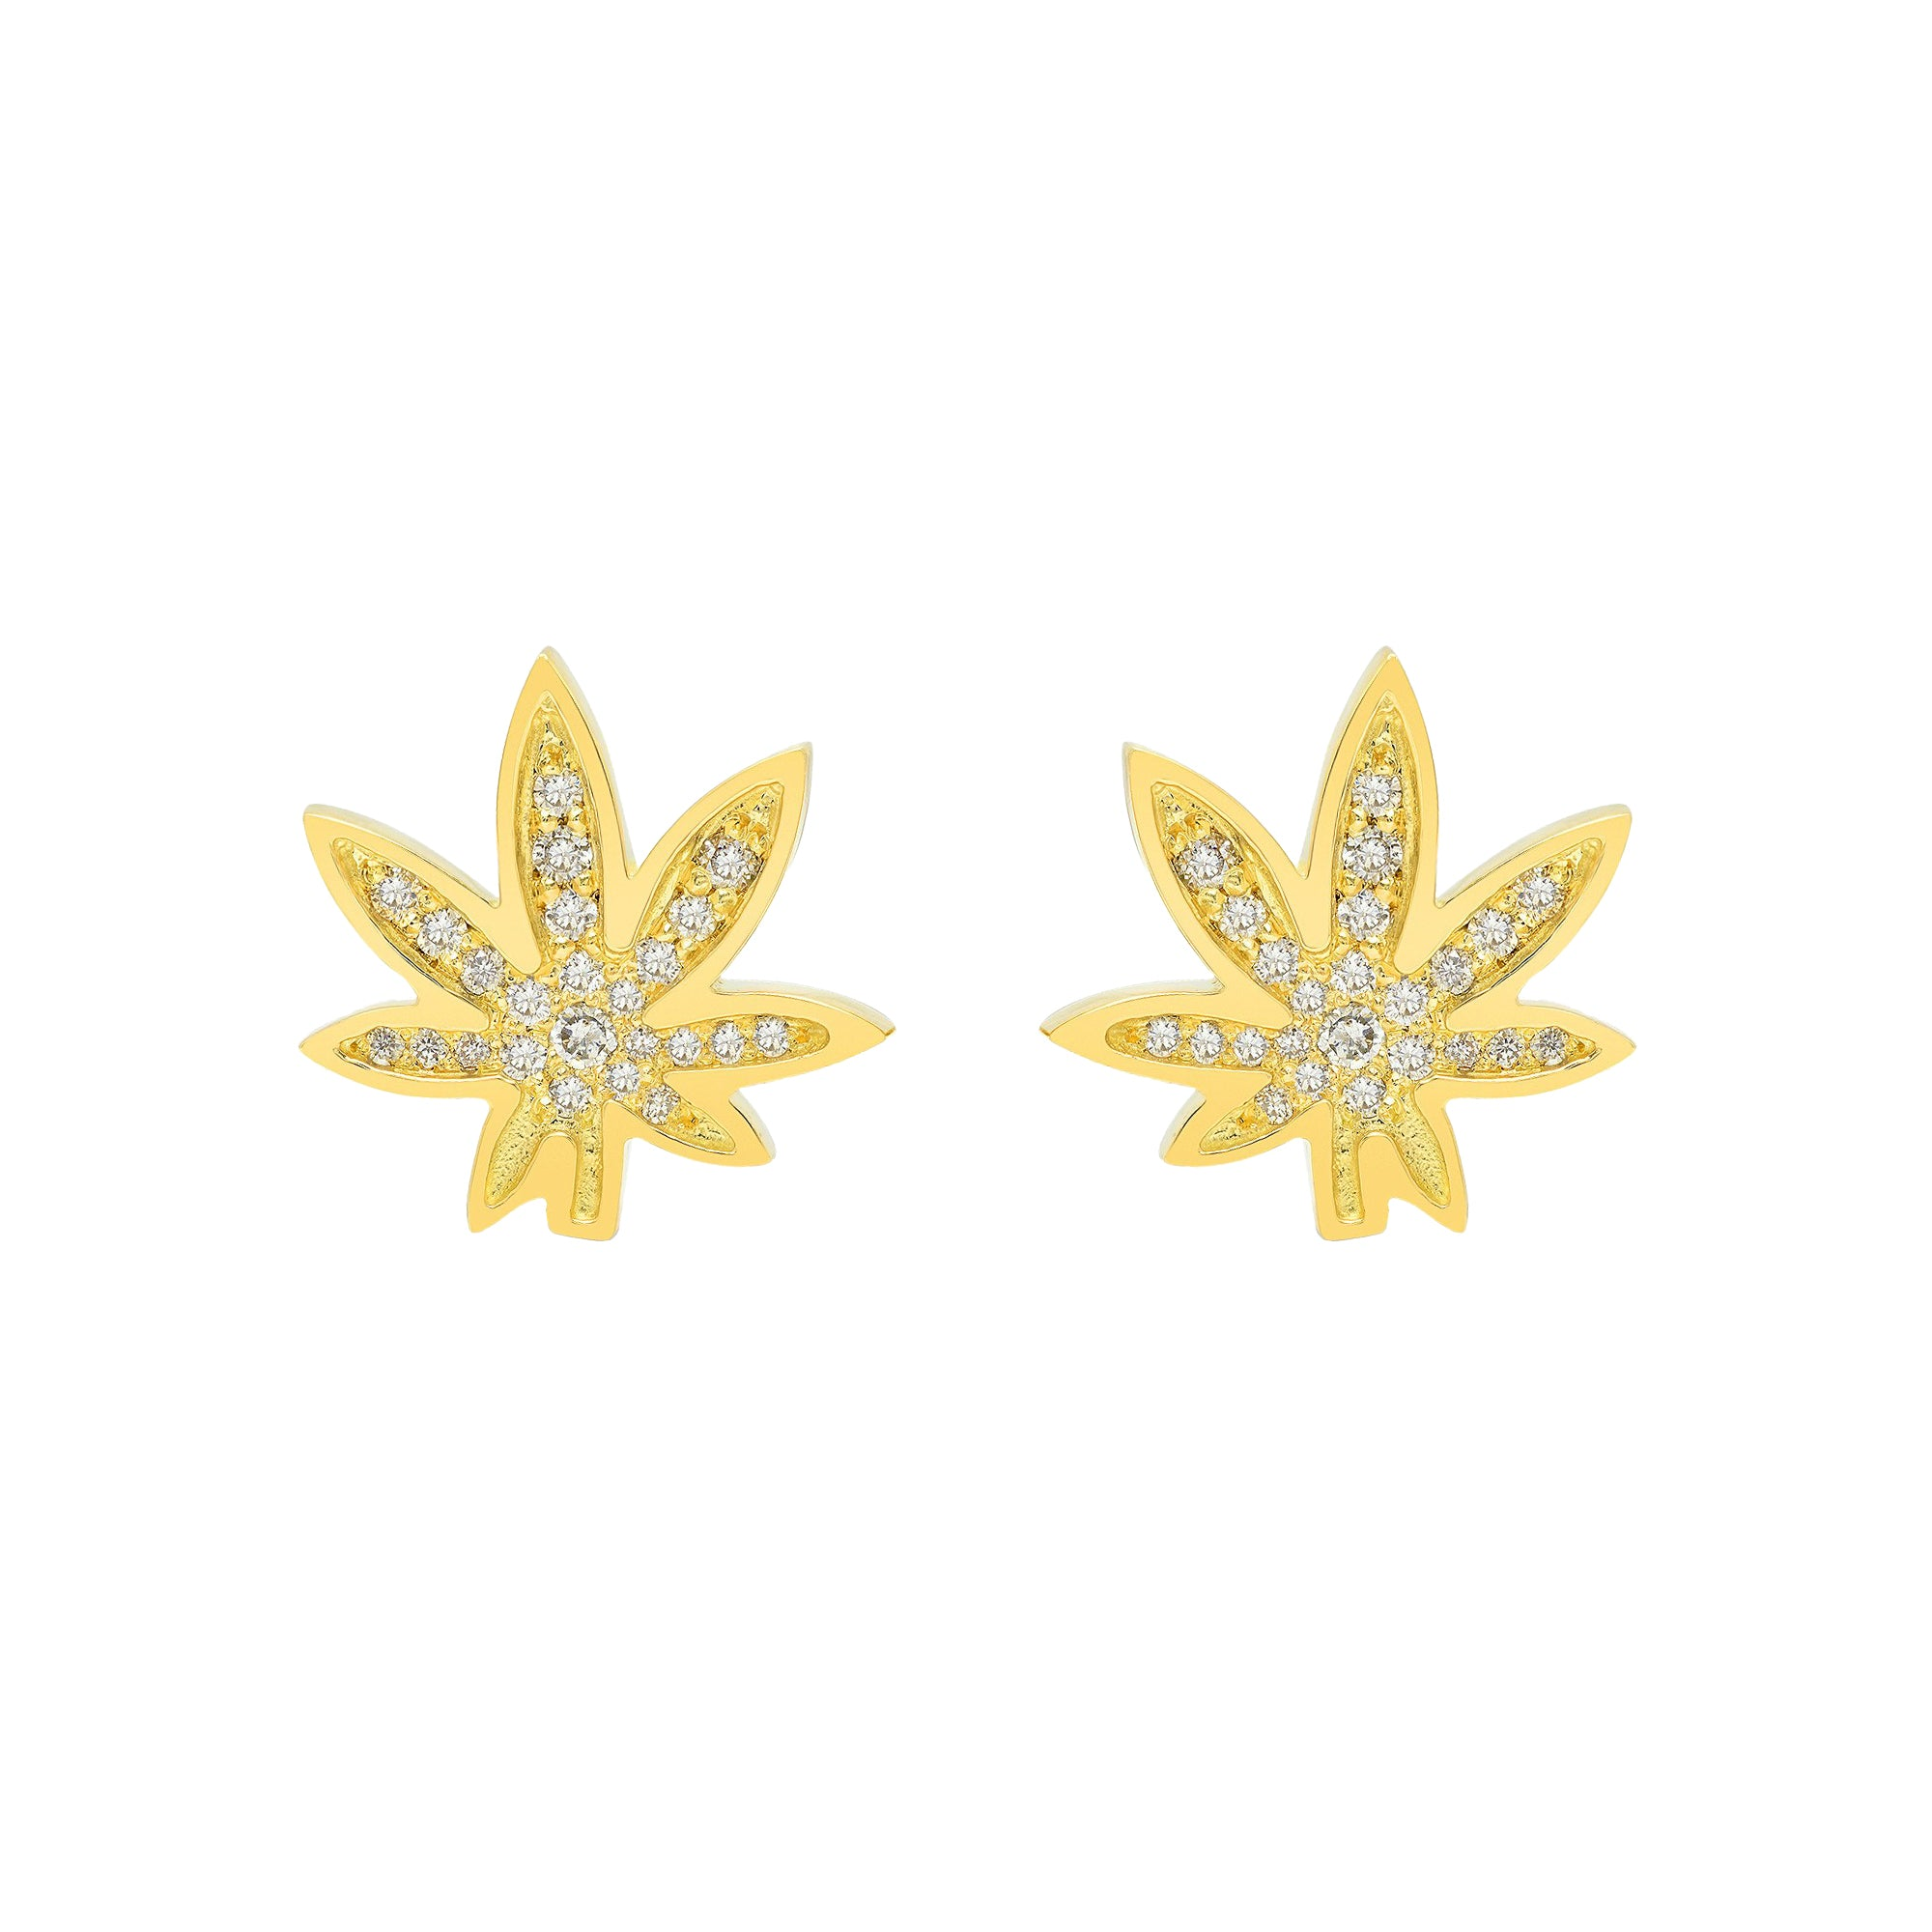 Gold & White Diamond Cannabis Pave Studs by Established for Broken English Jewelry